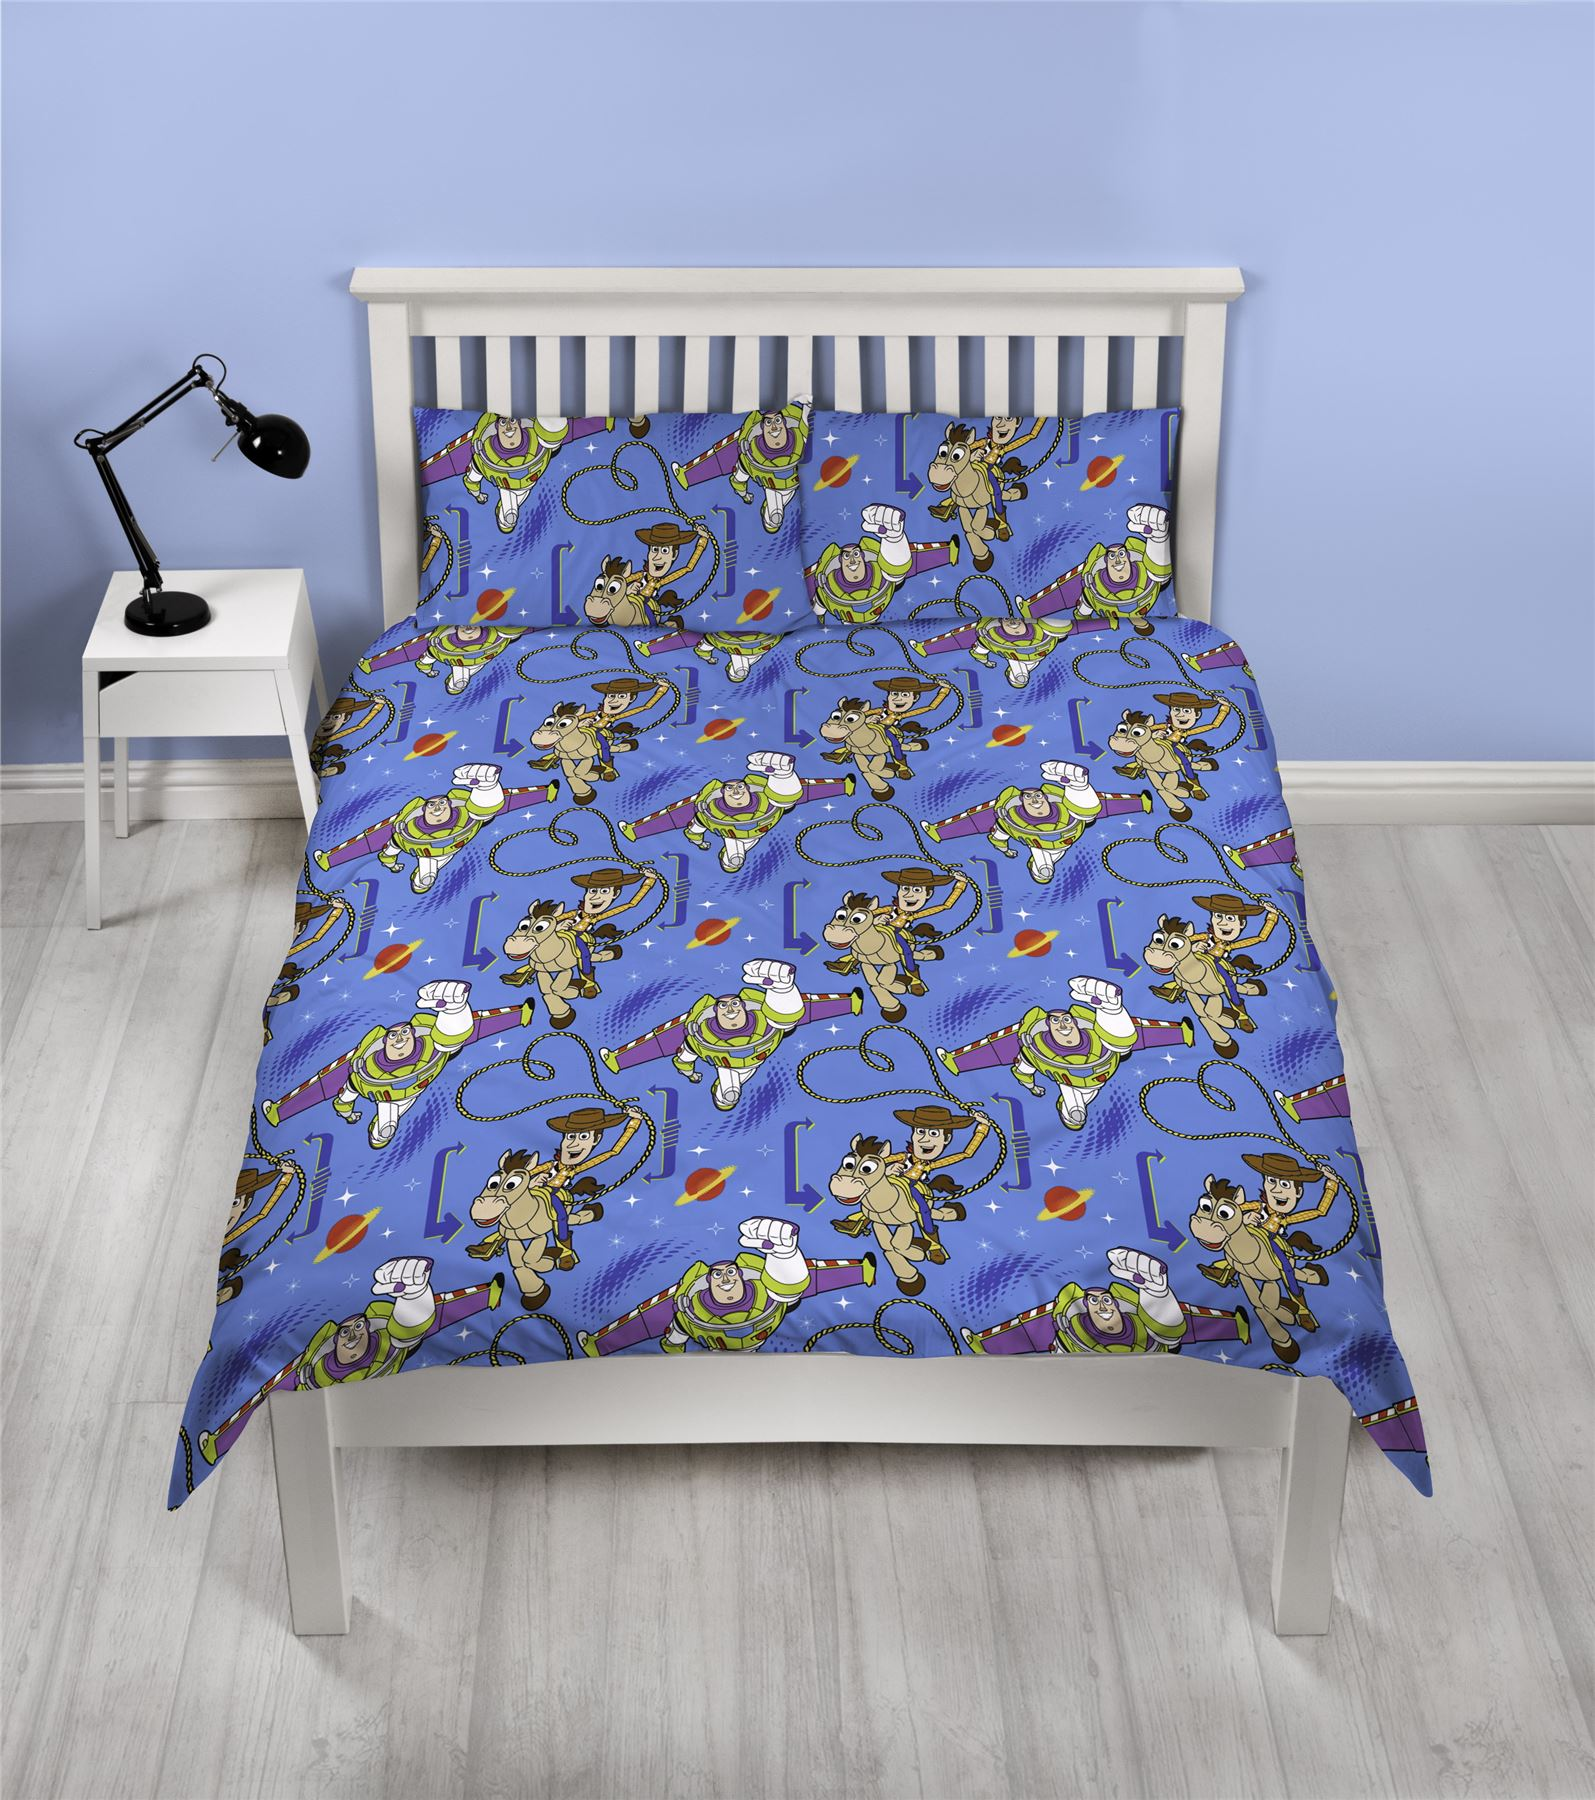 Toy-Story-Friends-Single-Double-Reversible-Duvet-Cover-Bedding-Official-Disney thumbnail 4